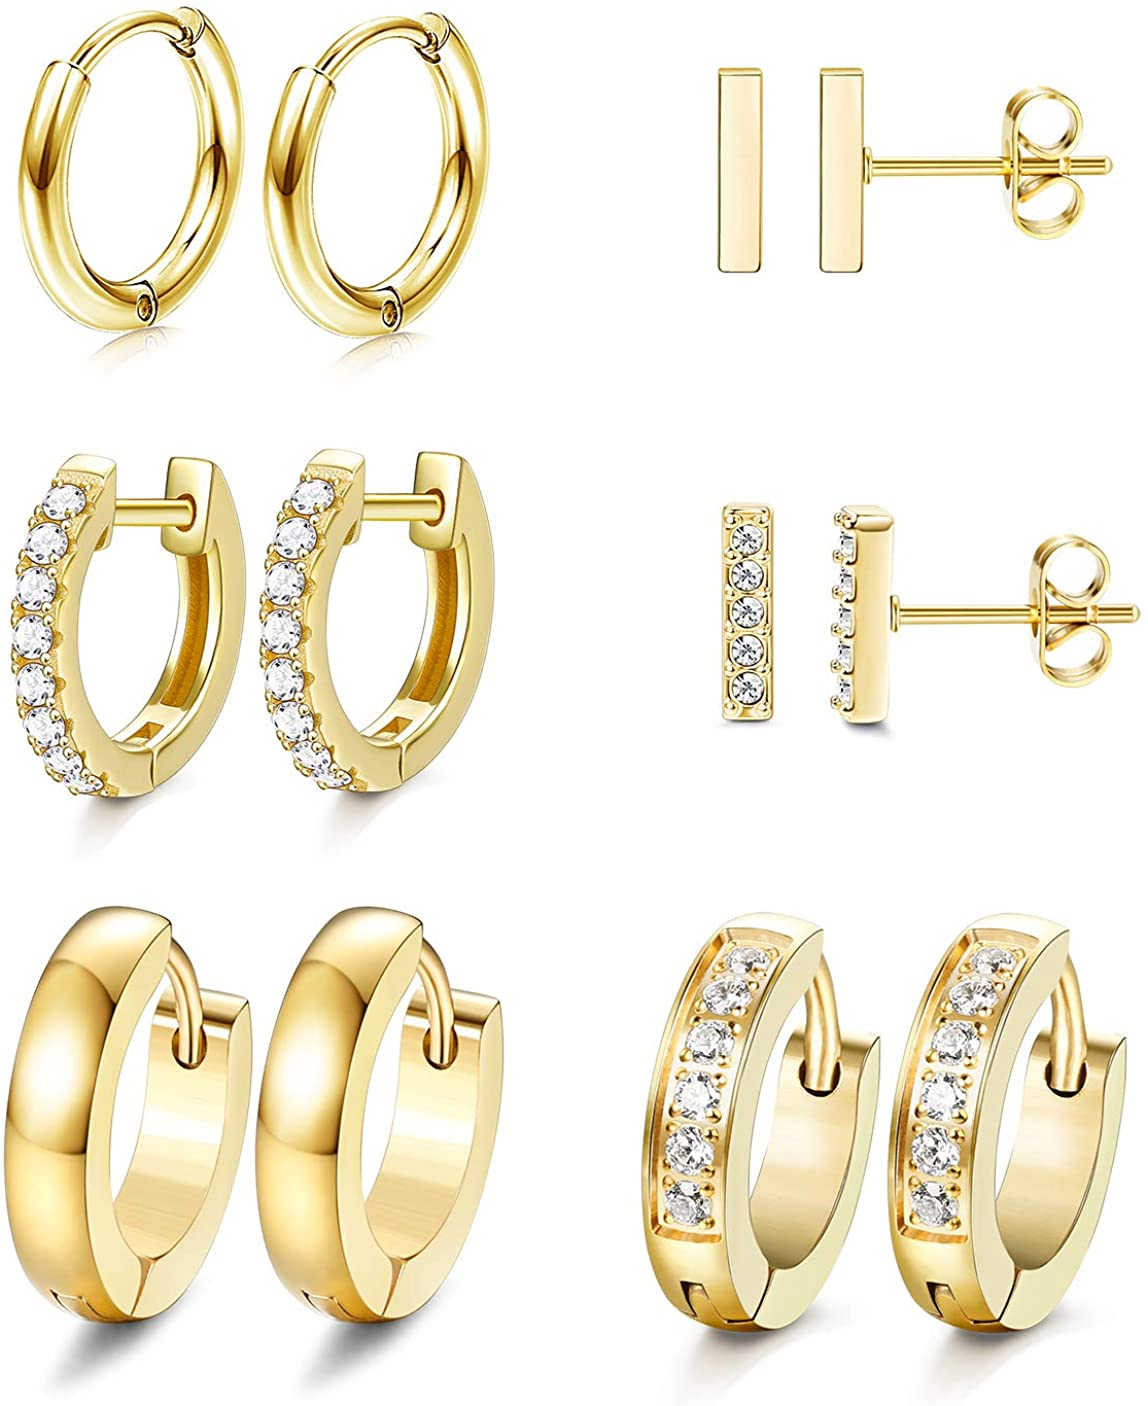 JOERICA 6 Pairs Hoop Huggie Earrings for Women Girls Minimalist Cuff Mini Bar Stud Earrings Gold Silver Cubic Zirconia Small Ear Piercing Set